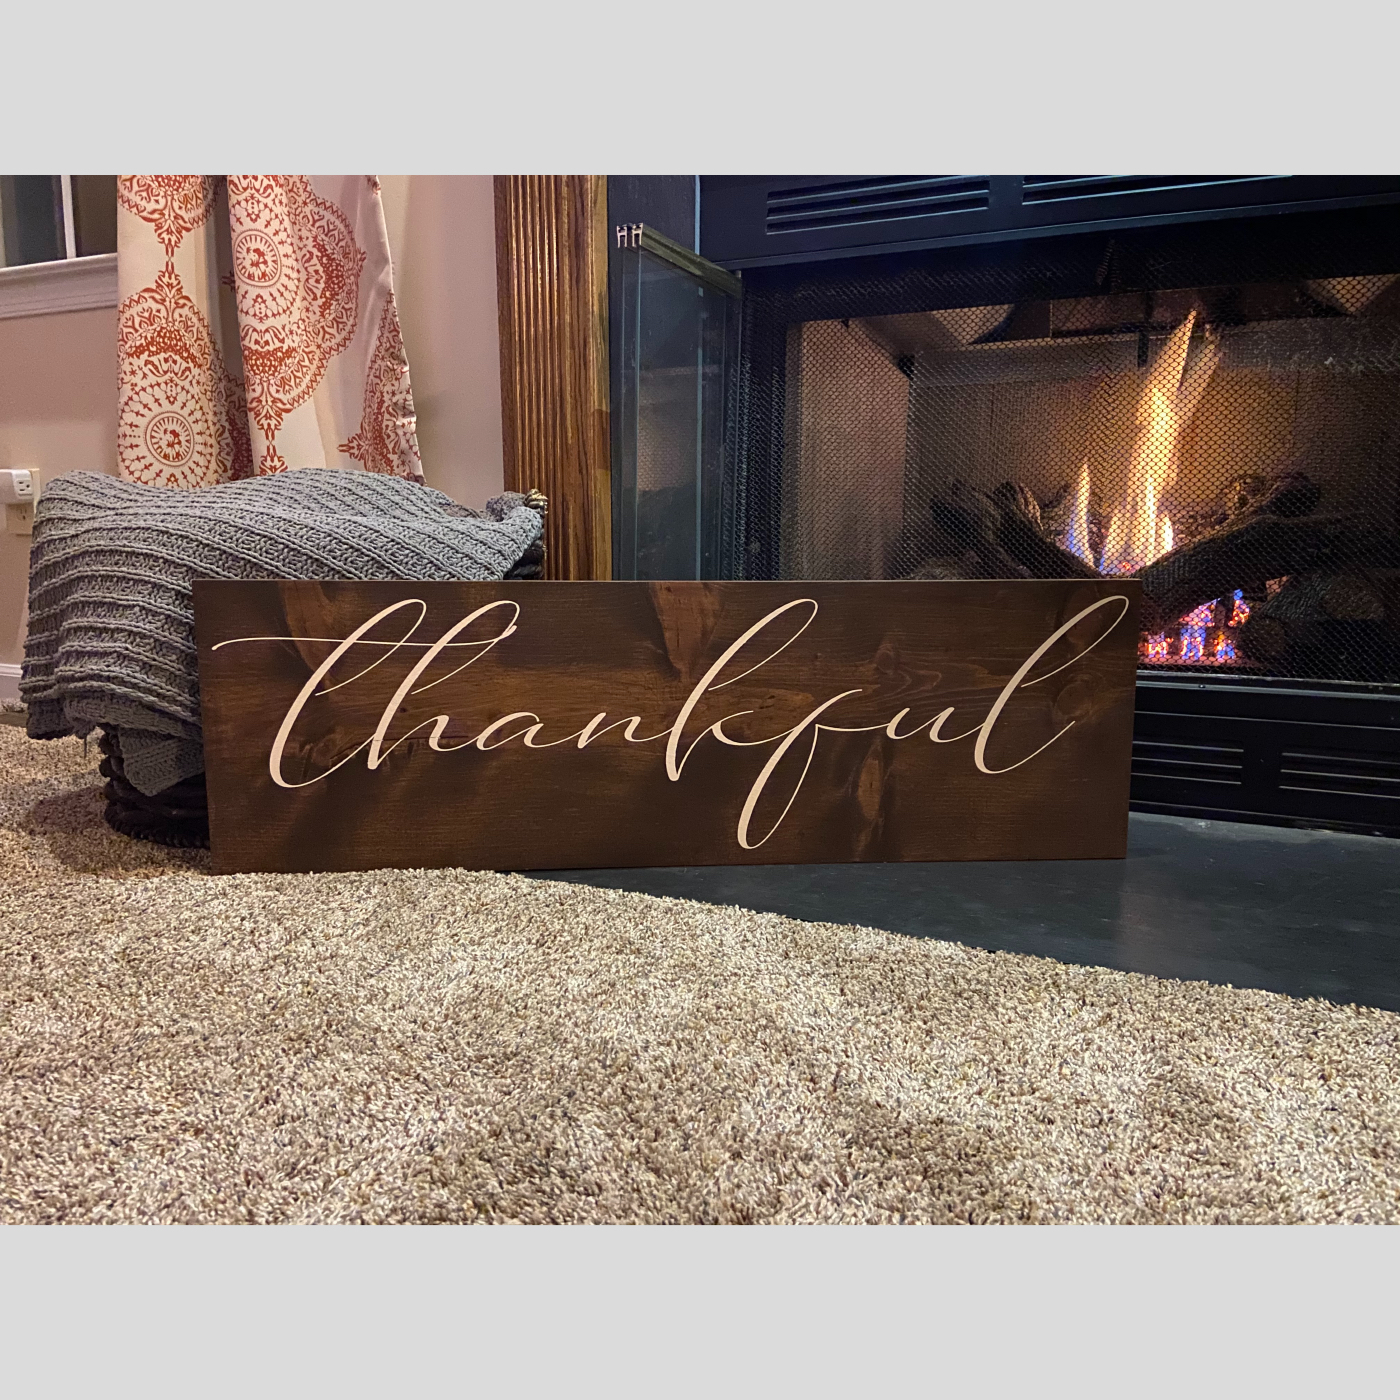 Thankful DIY Wood Sign Bethlehem PA